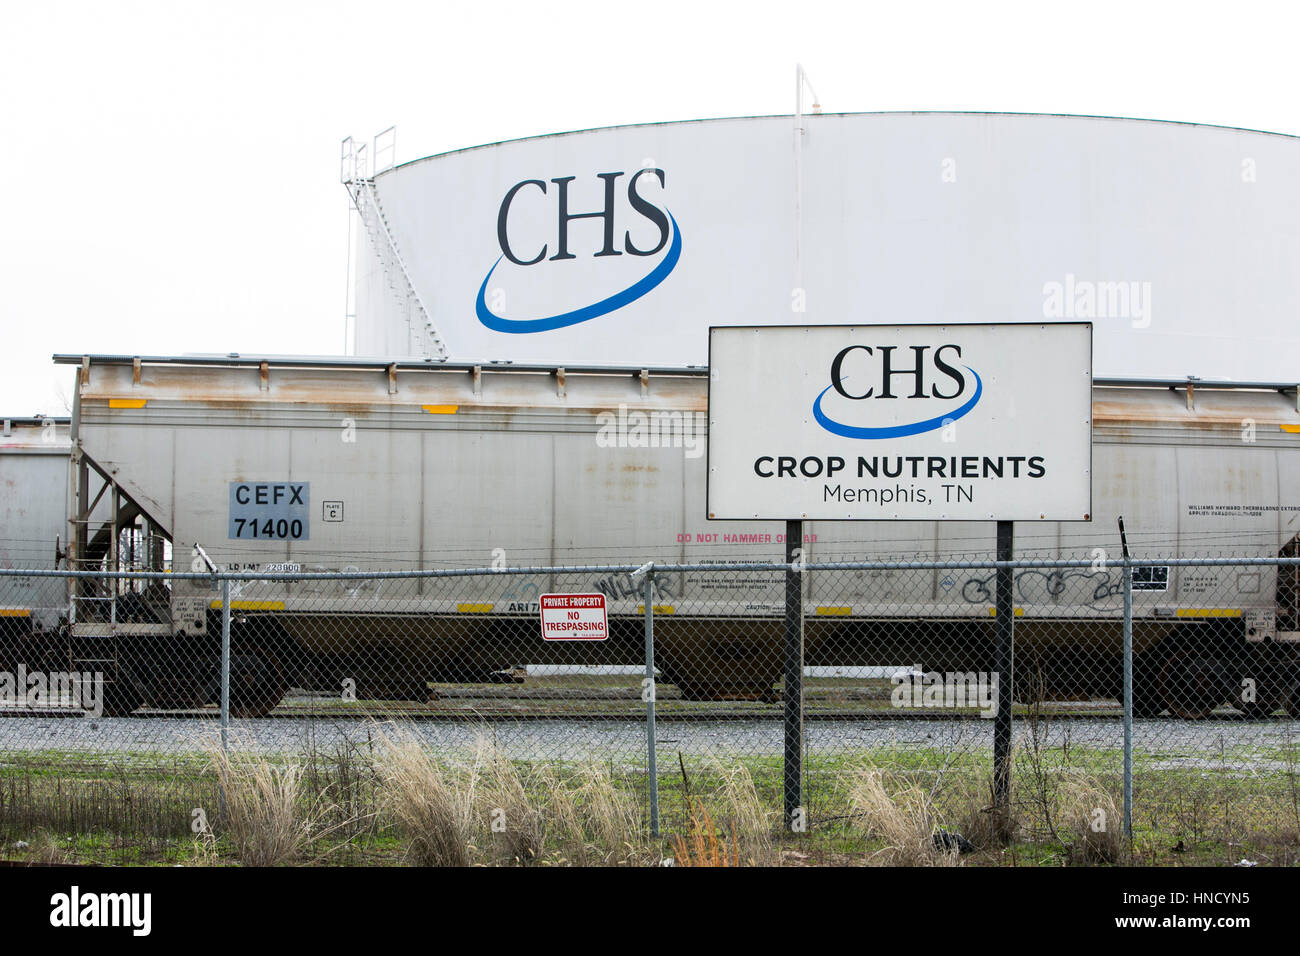 A logo sign outside of a facility occupied by CHS Inc., in Memphis, Tennessee on February 5, 2017. - Stock Image